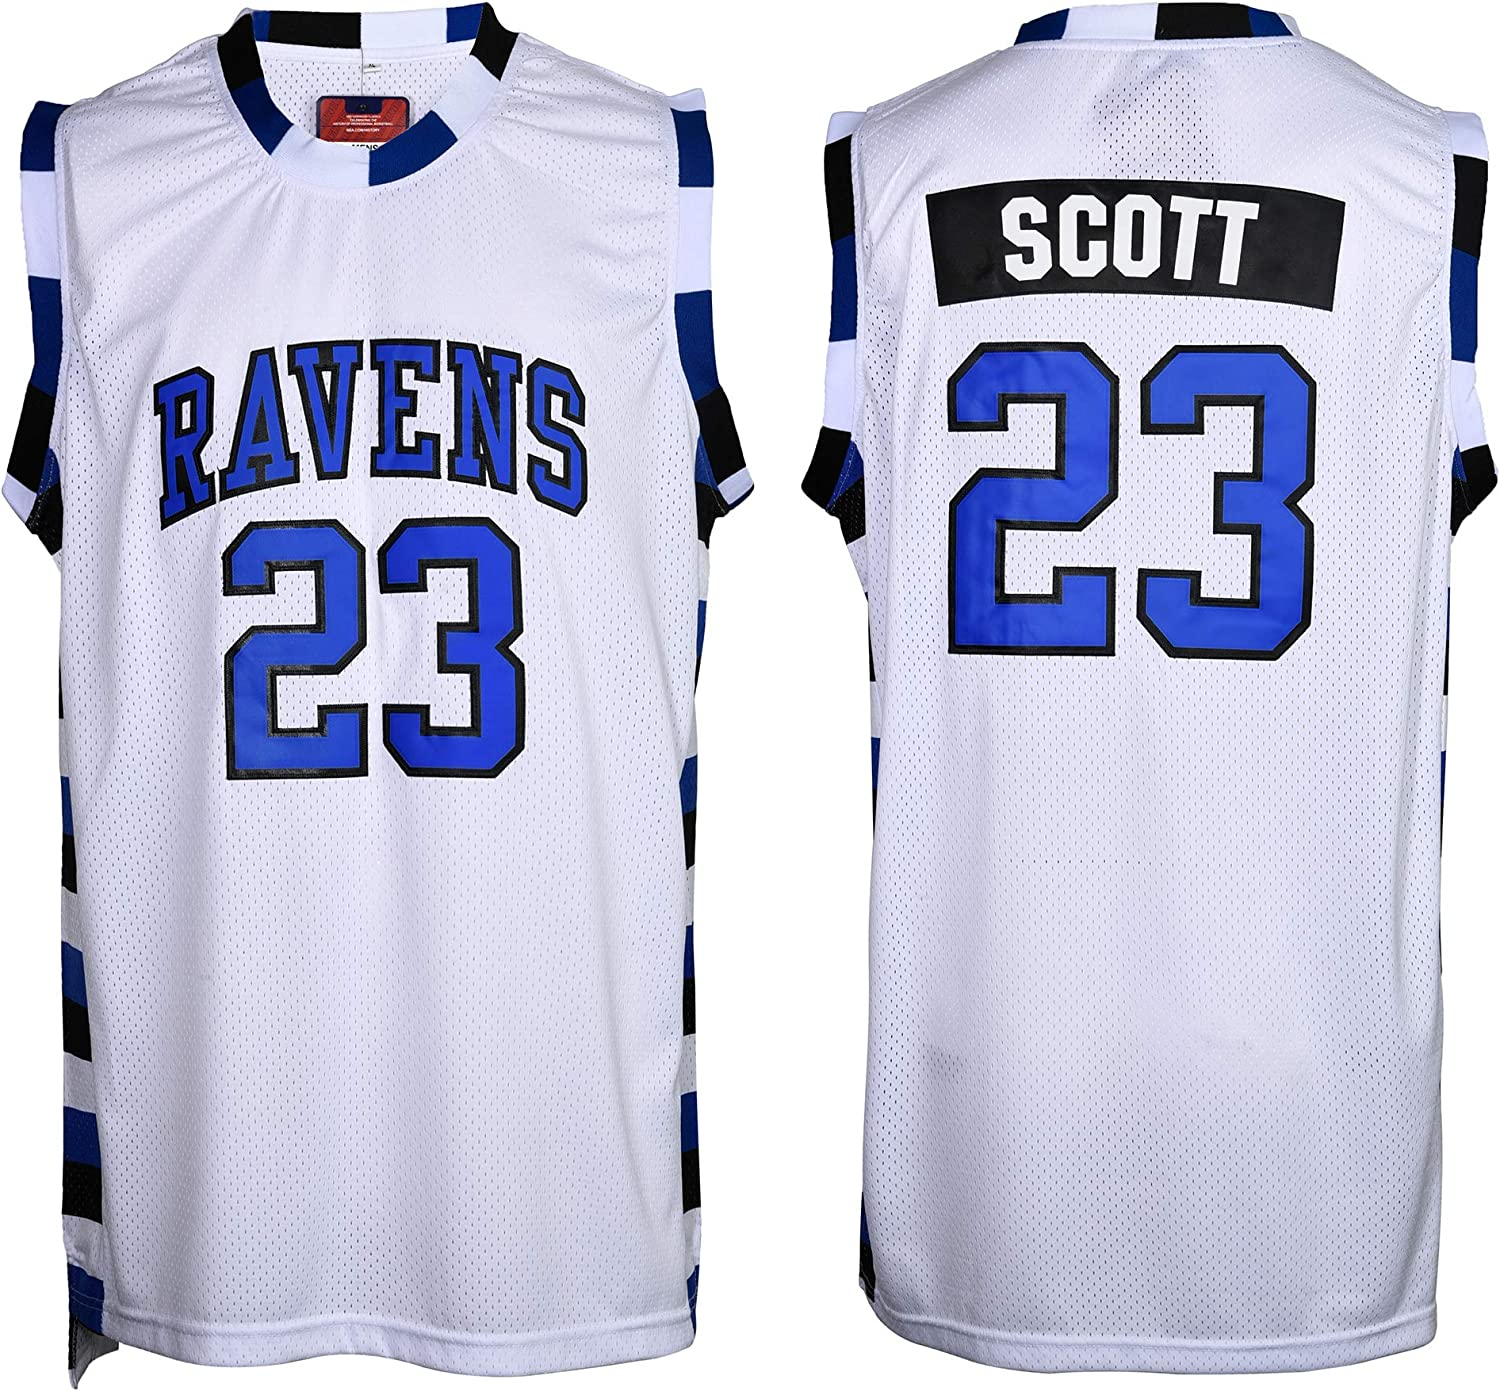 Mens Lucas Scott #23 Tree HIL Ravens Basketball Jersey ,Stitched Name and Numbers Sports Movie Jersey (White, Large)